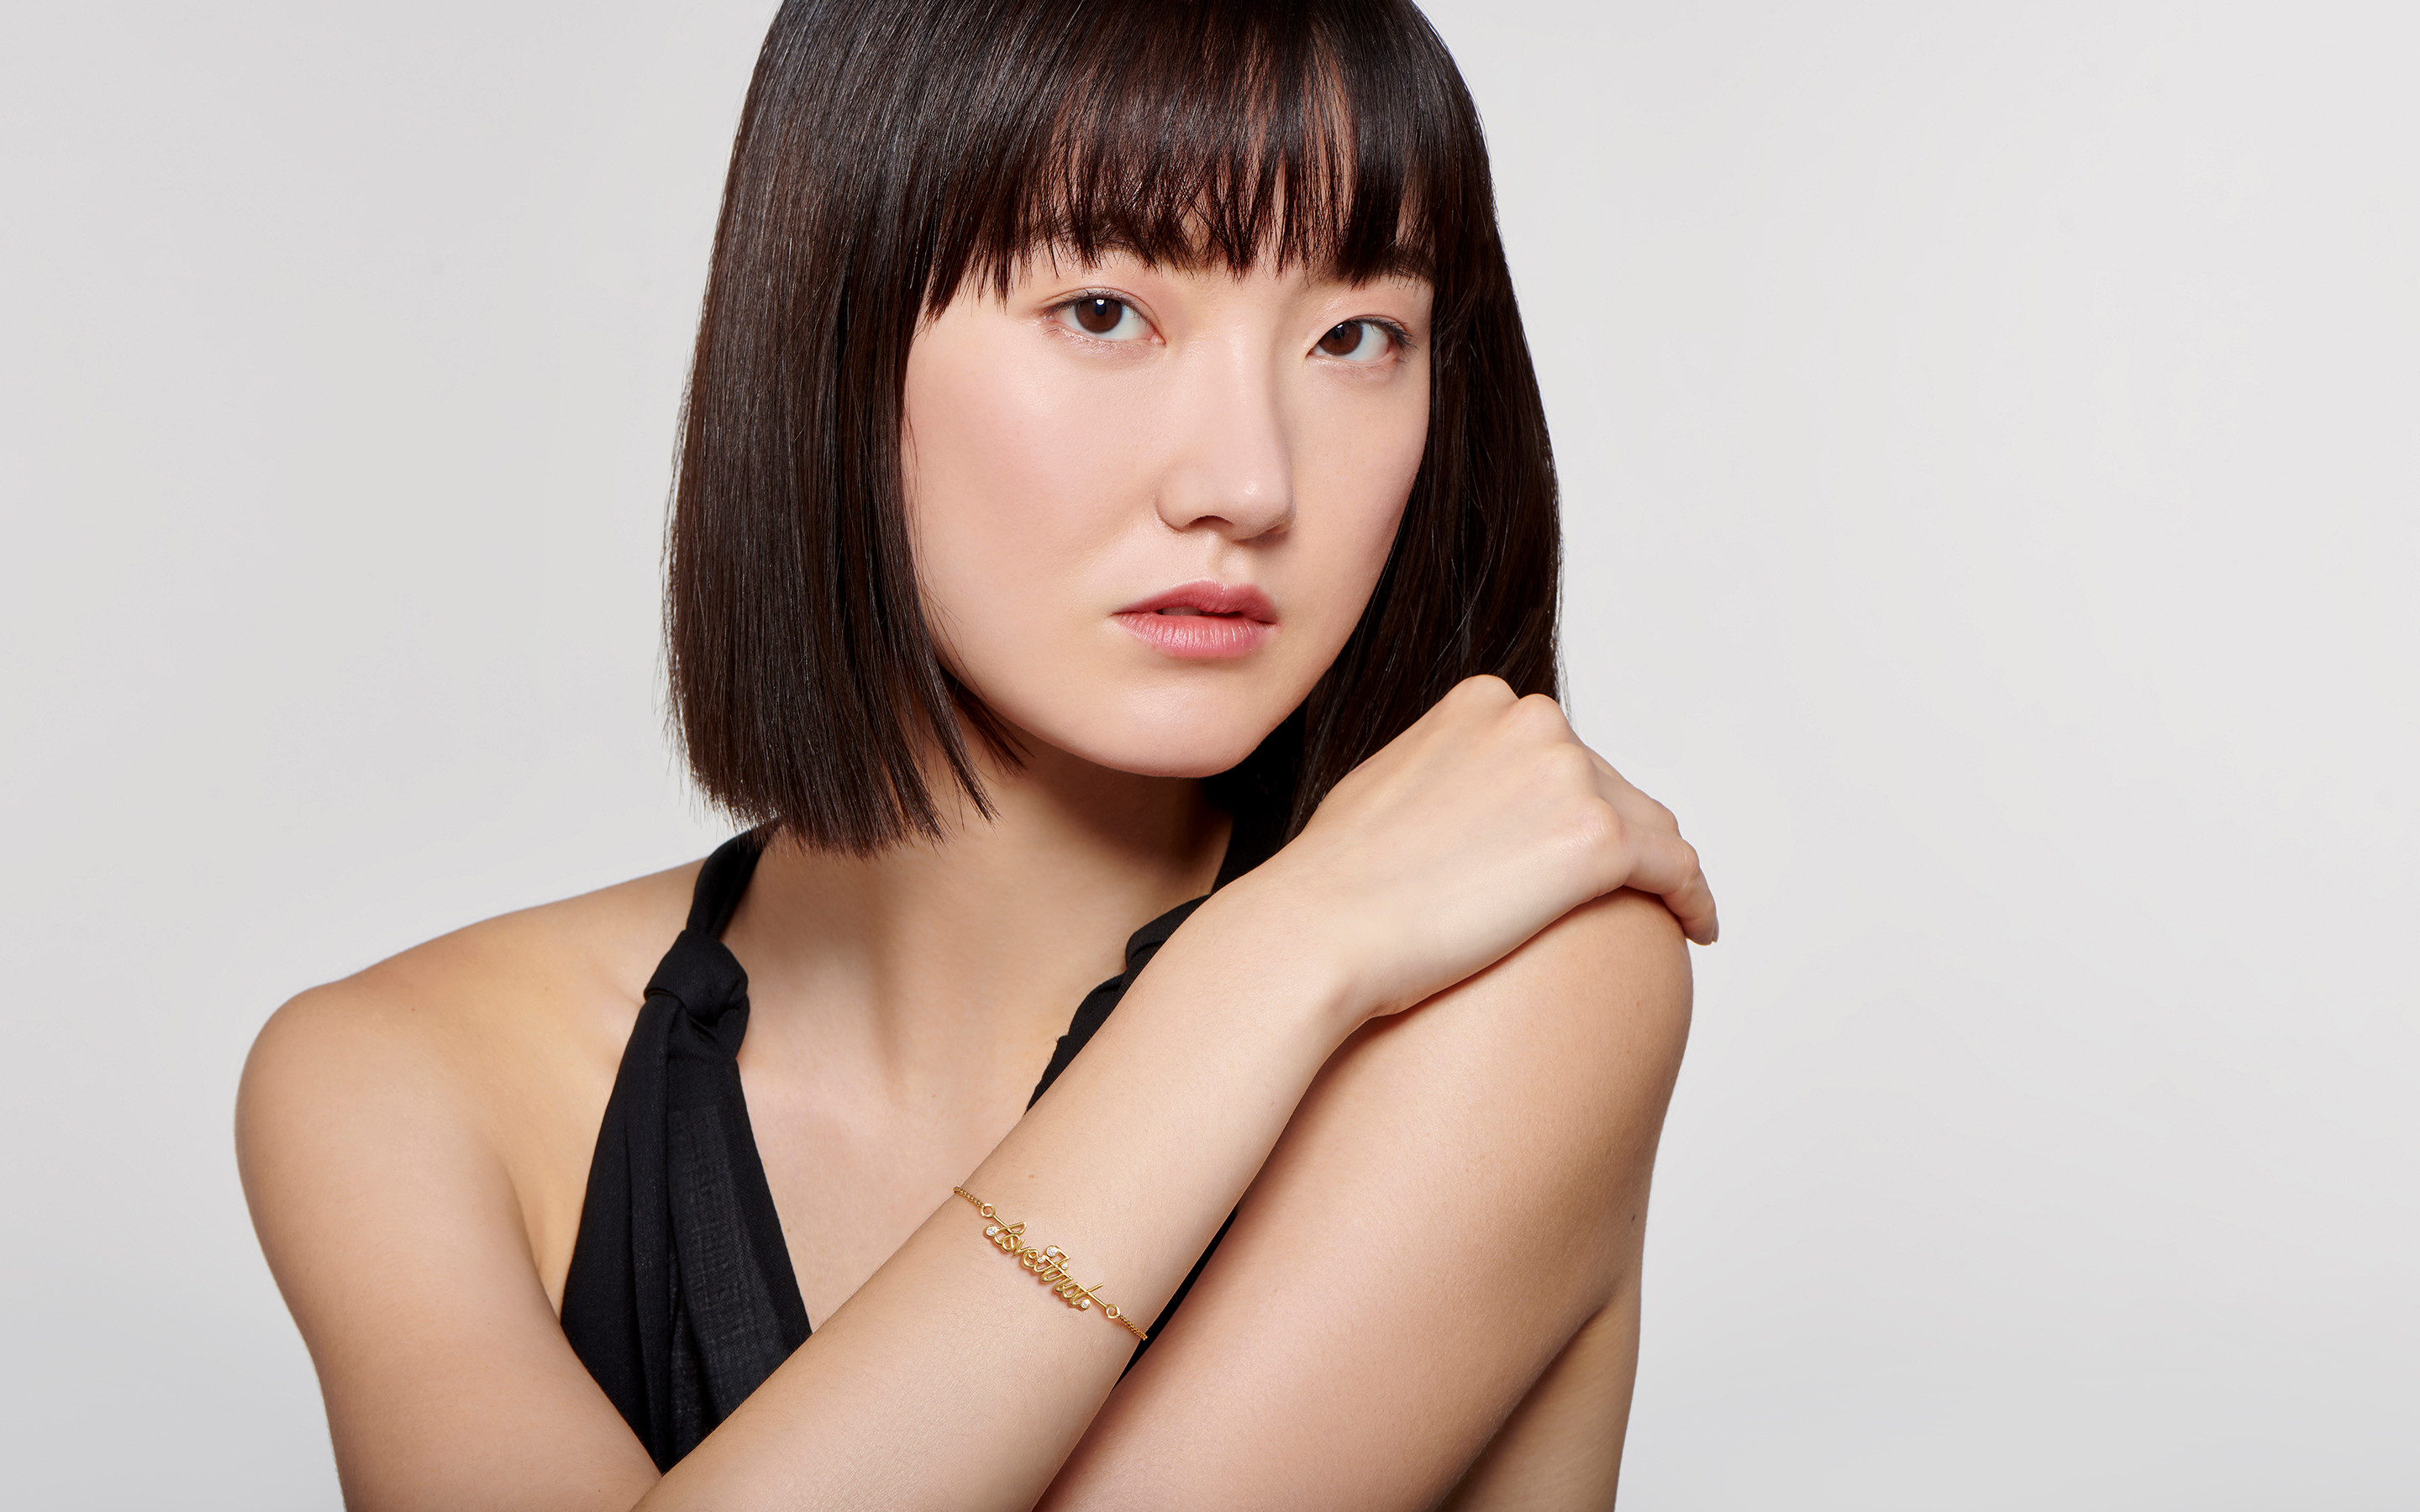 Intense Asian model flashing a magnificent 22 karat gold bracelet